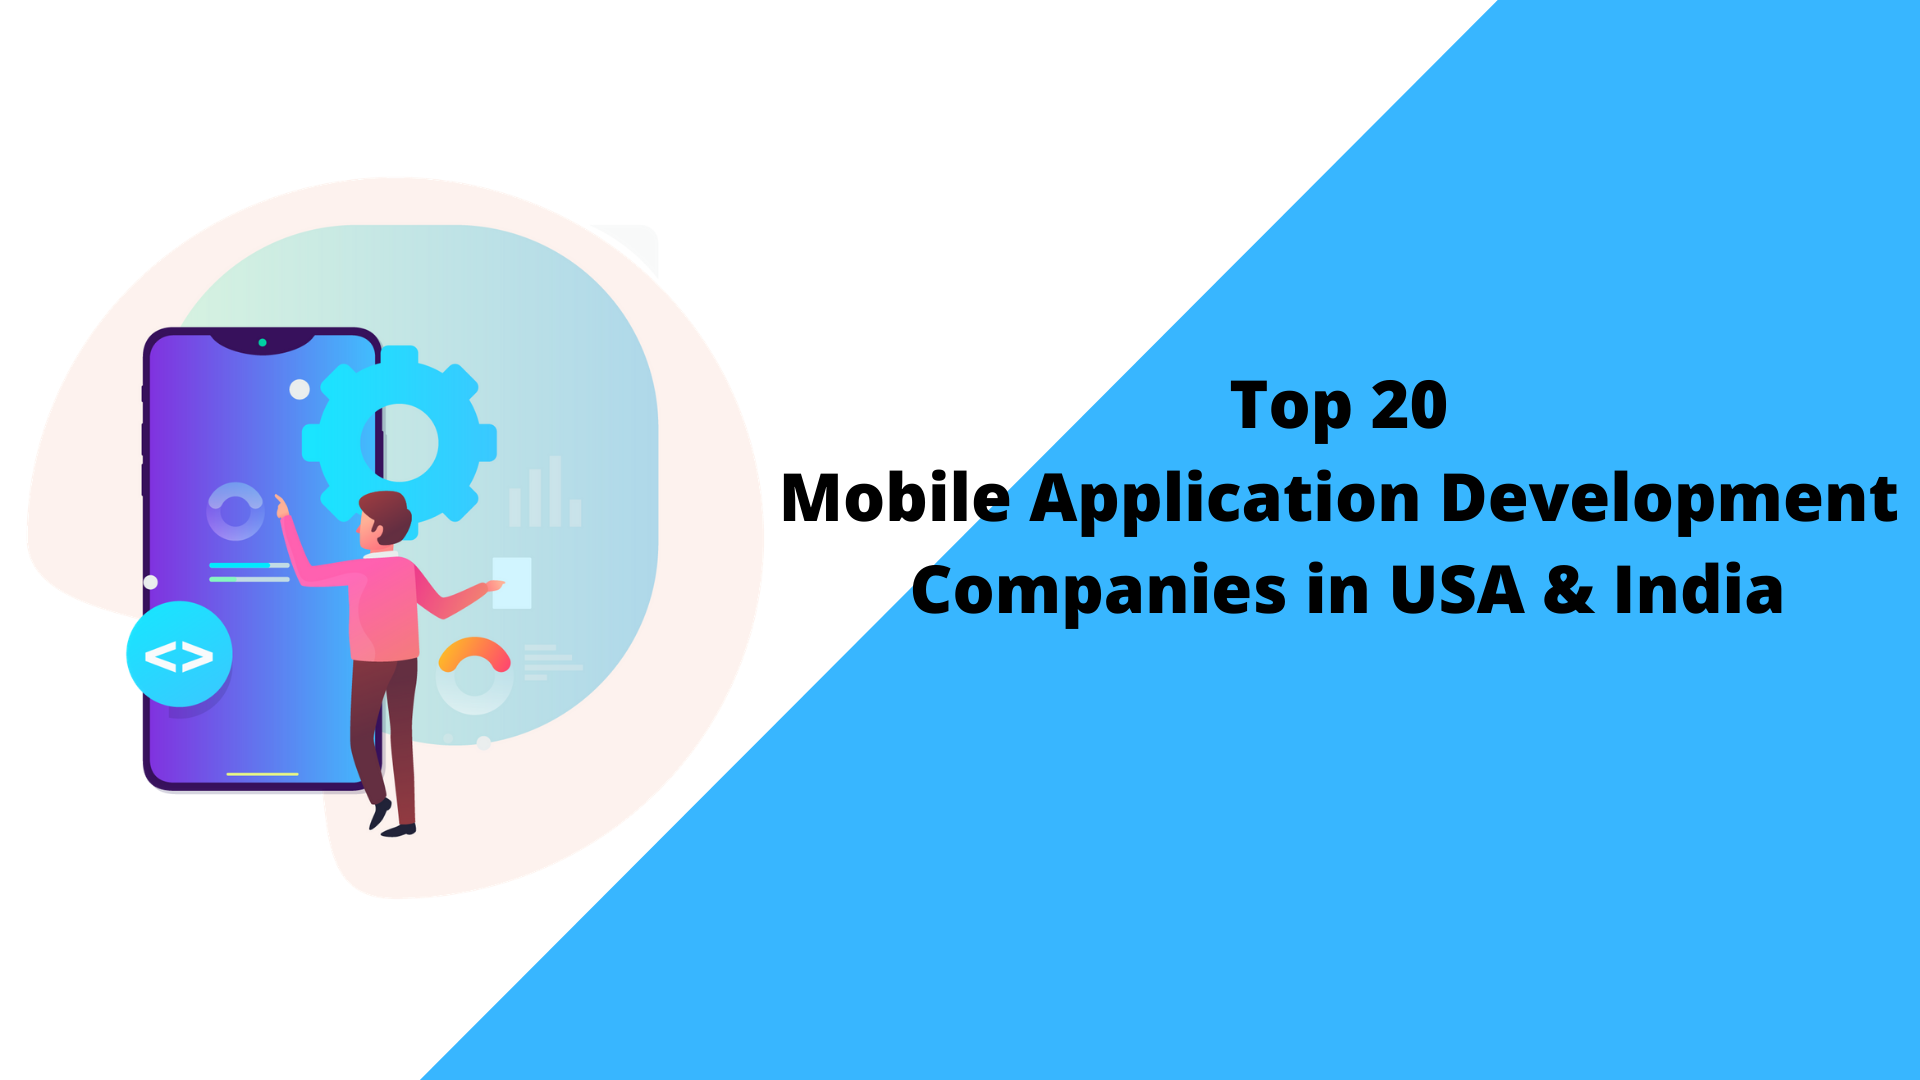 Top 20 Mobile Application Development Companies in USA and India